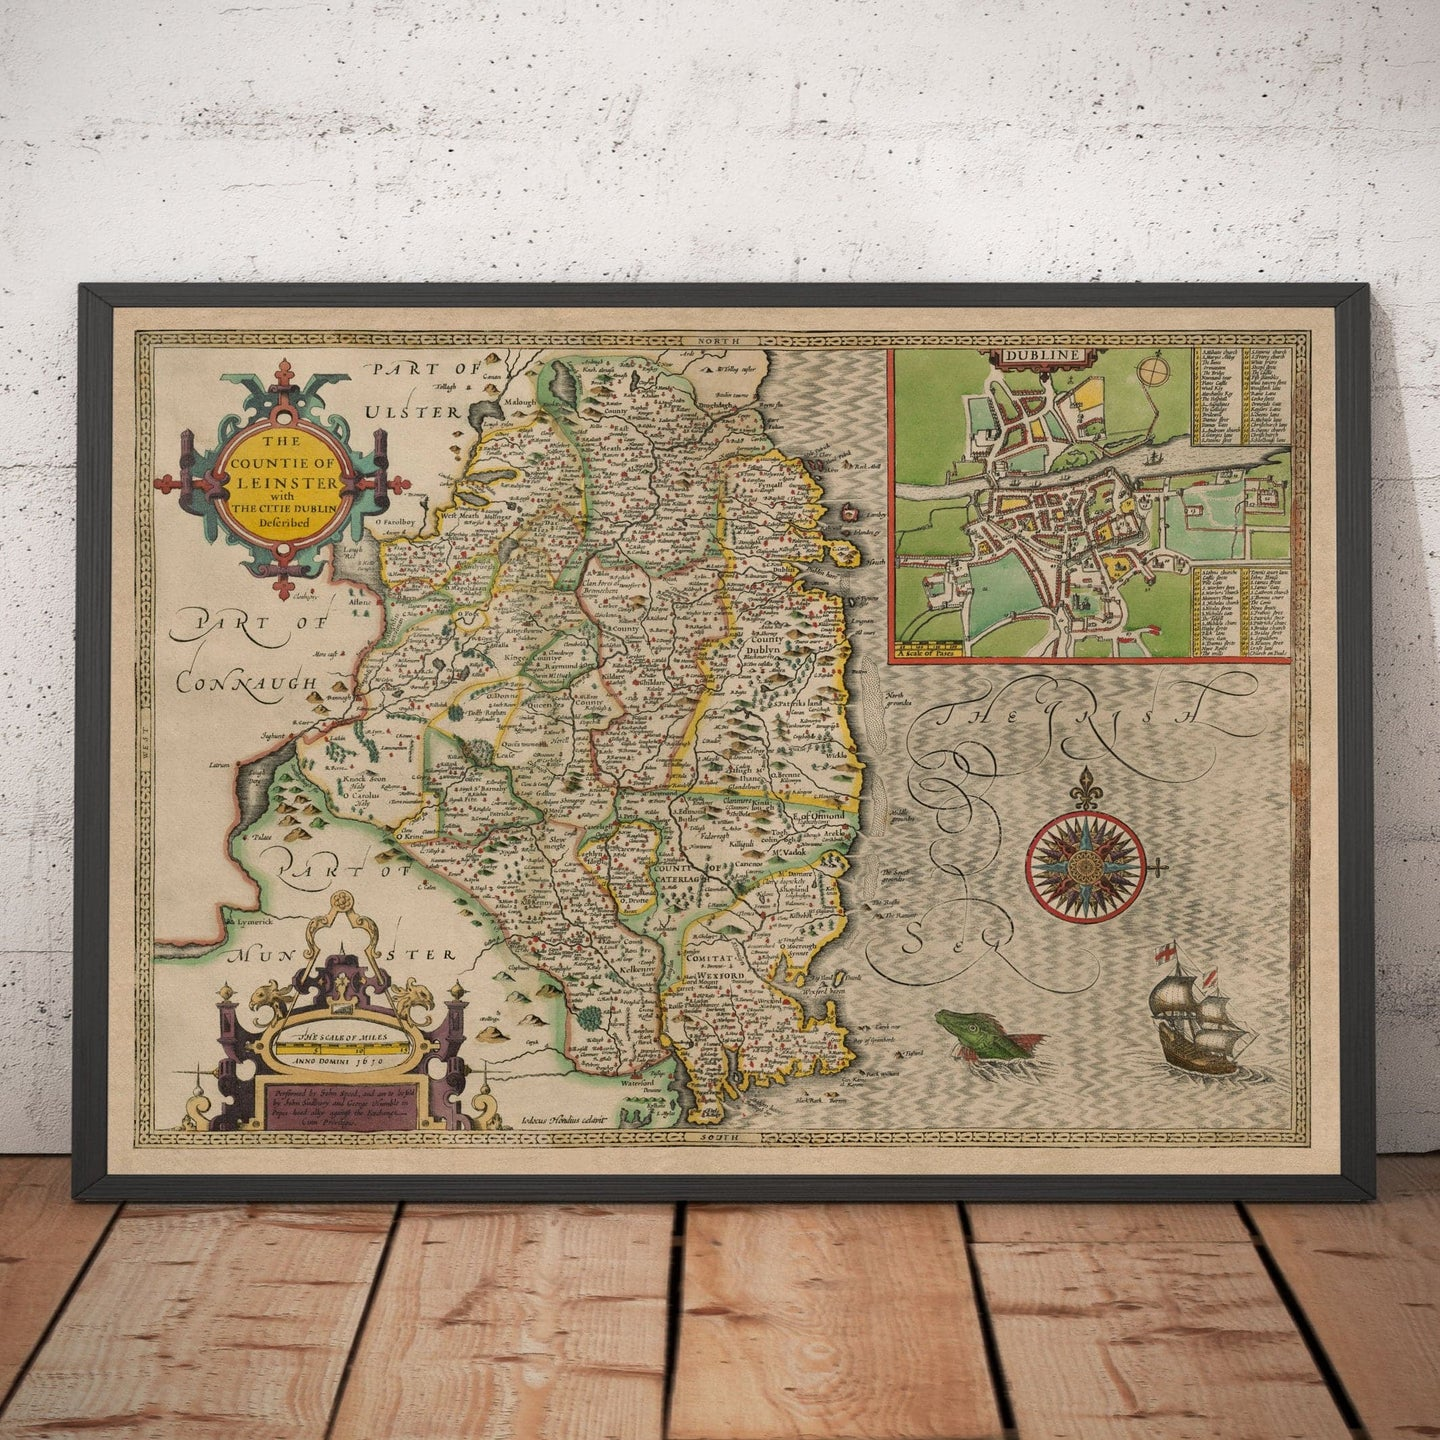 Old Map of Leinster, Ireland in 1611 by John Speed - County Dublin, Kilkenny, Meath - Christmas Gift - Colour Vintage Map - Framed Unframed